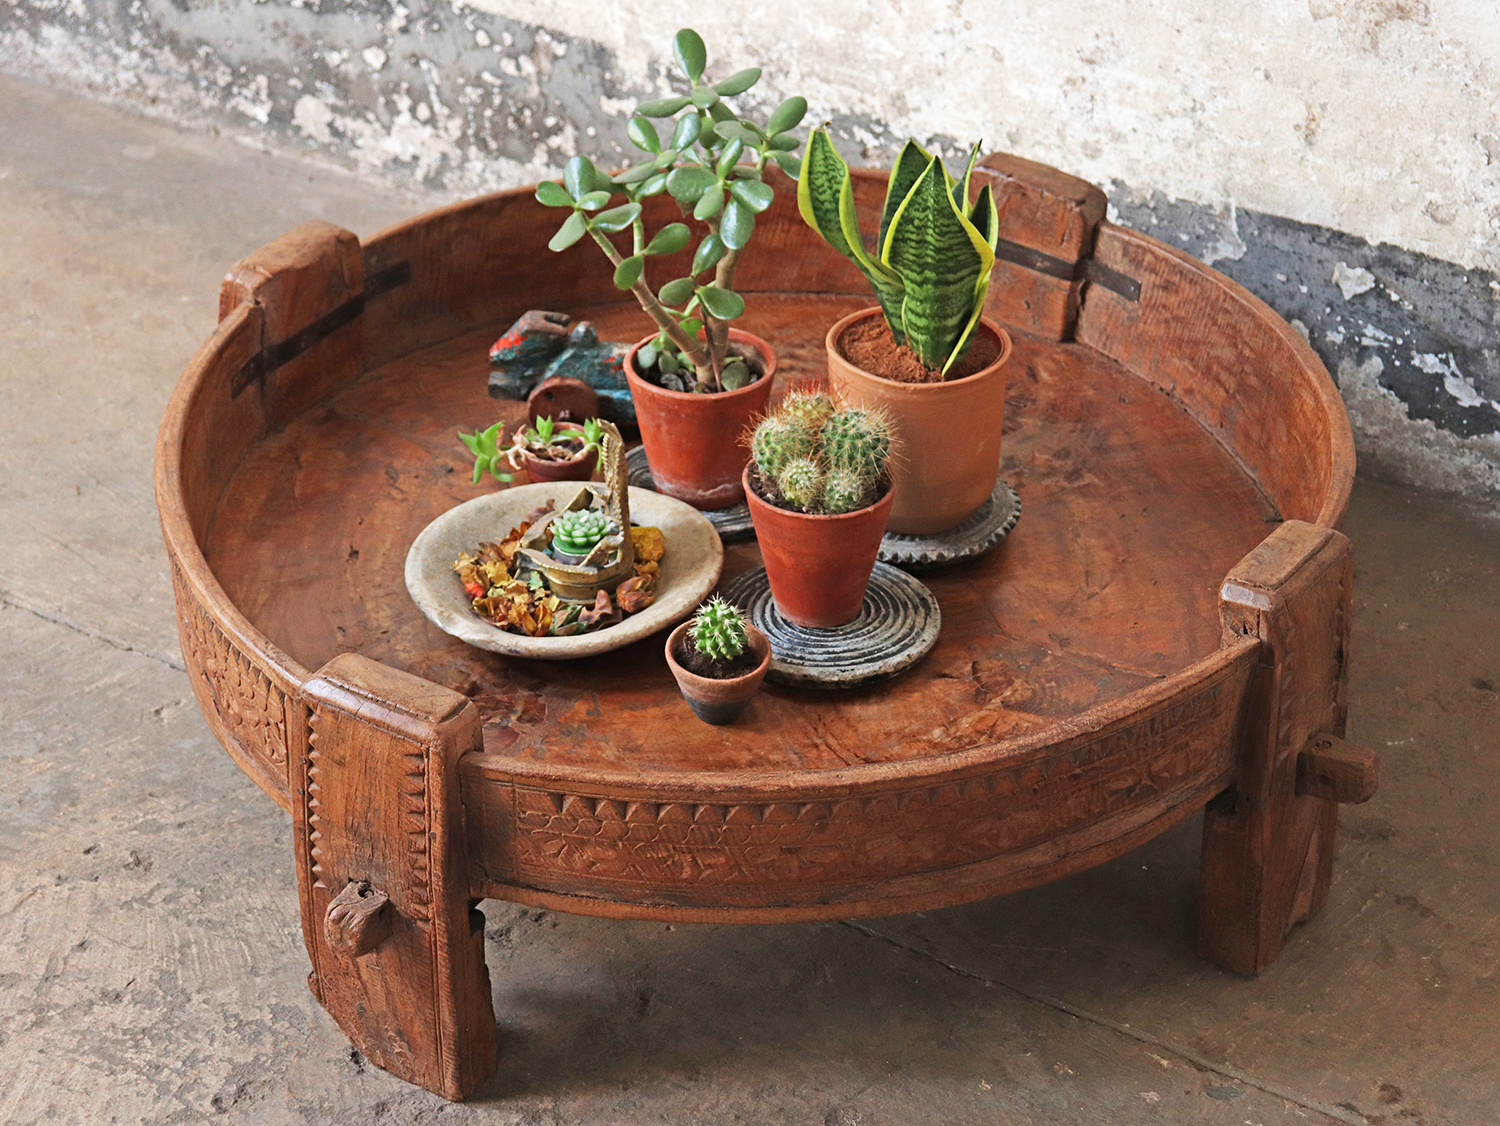 Use original and natural materials in your cottagecore styling